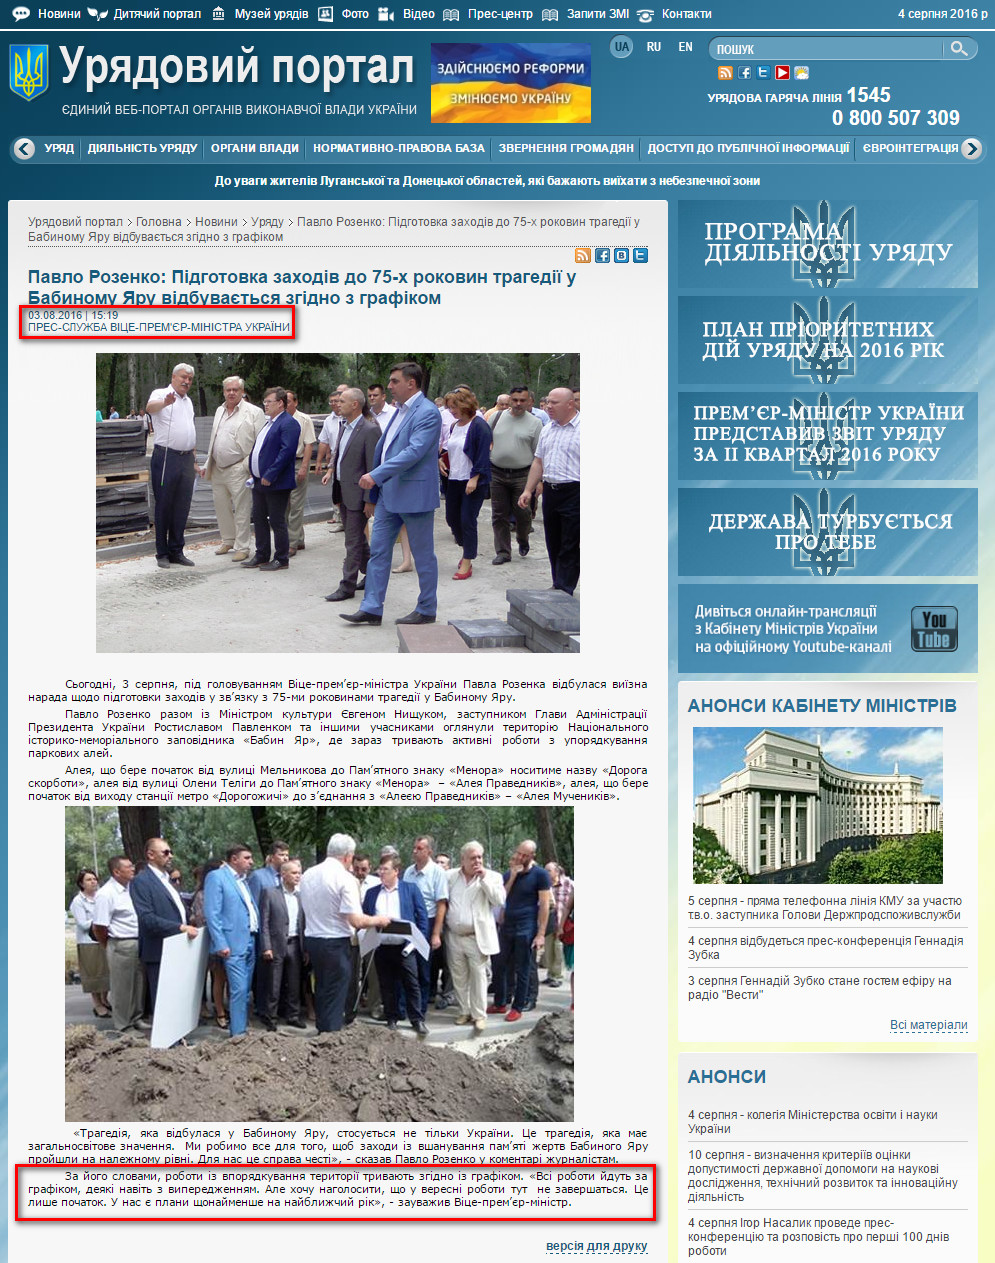 http://www.kmu.gov.ua/control/uk/publish/article?art_id=249227733&cat_id=244276429